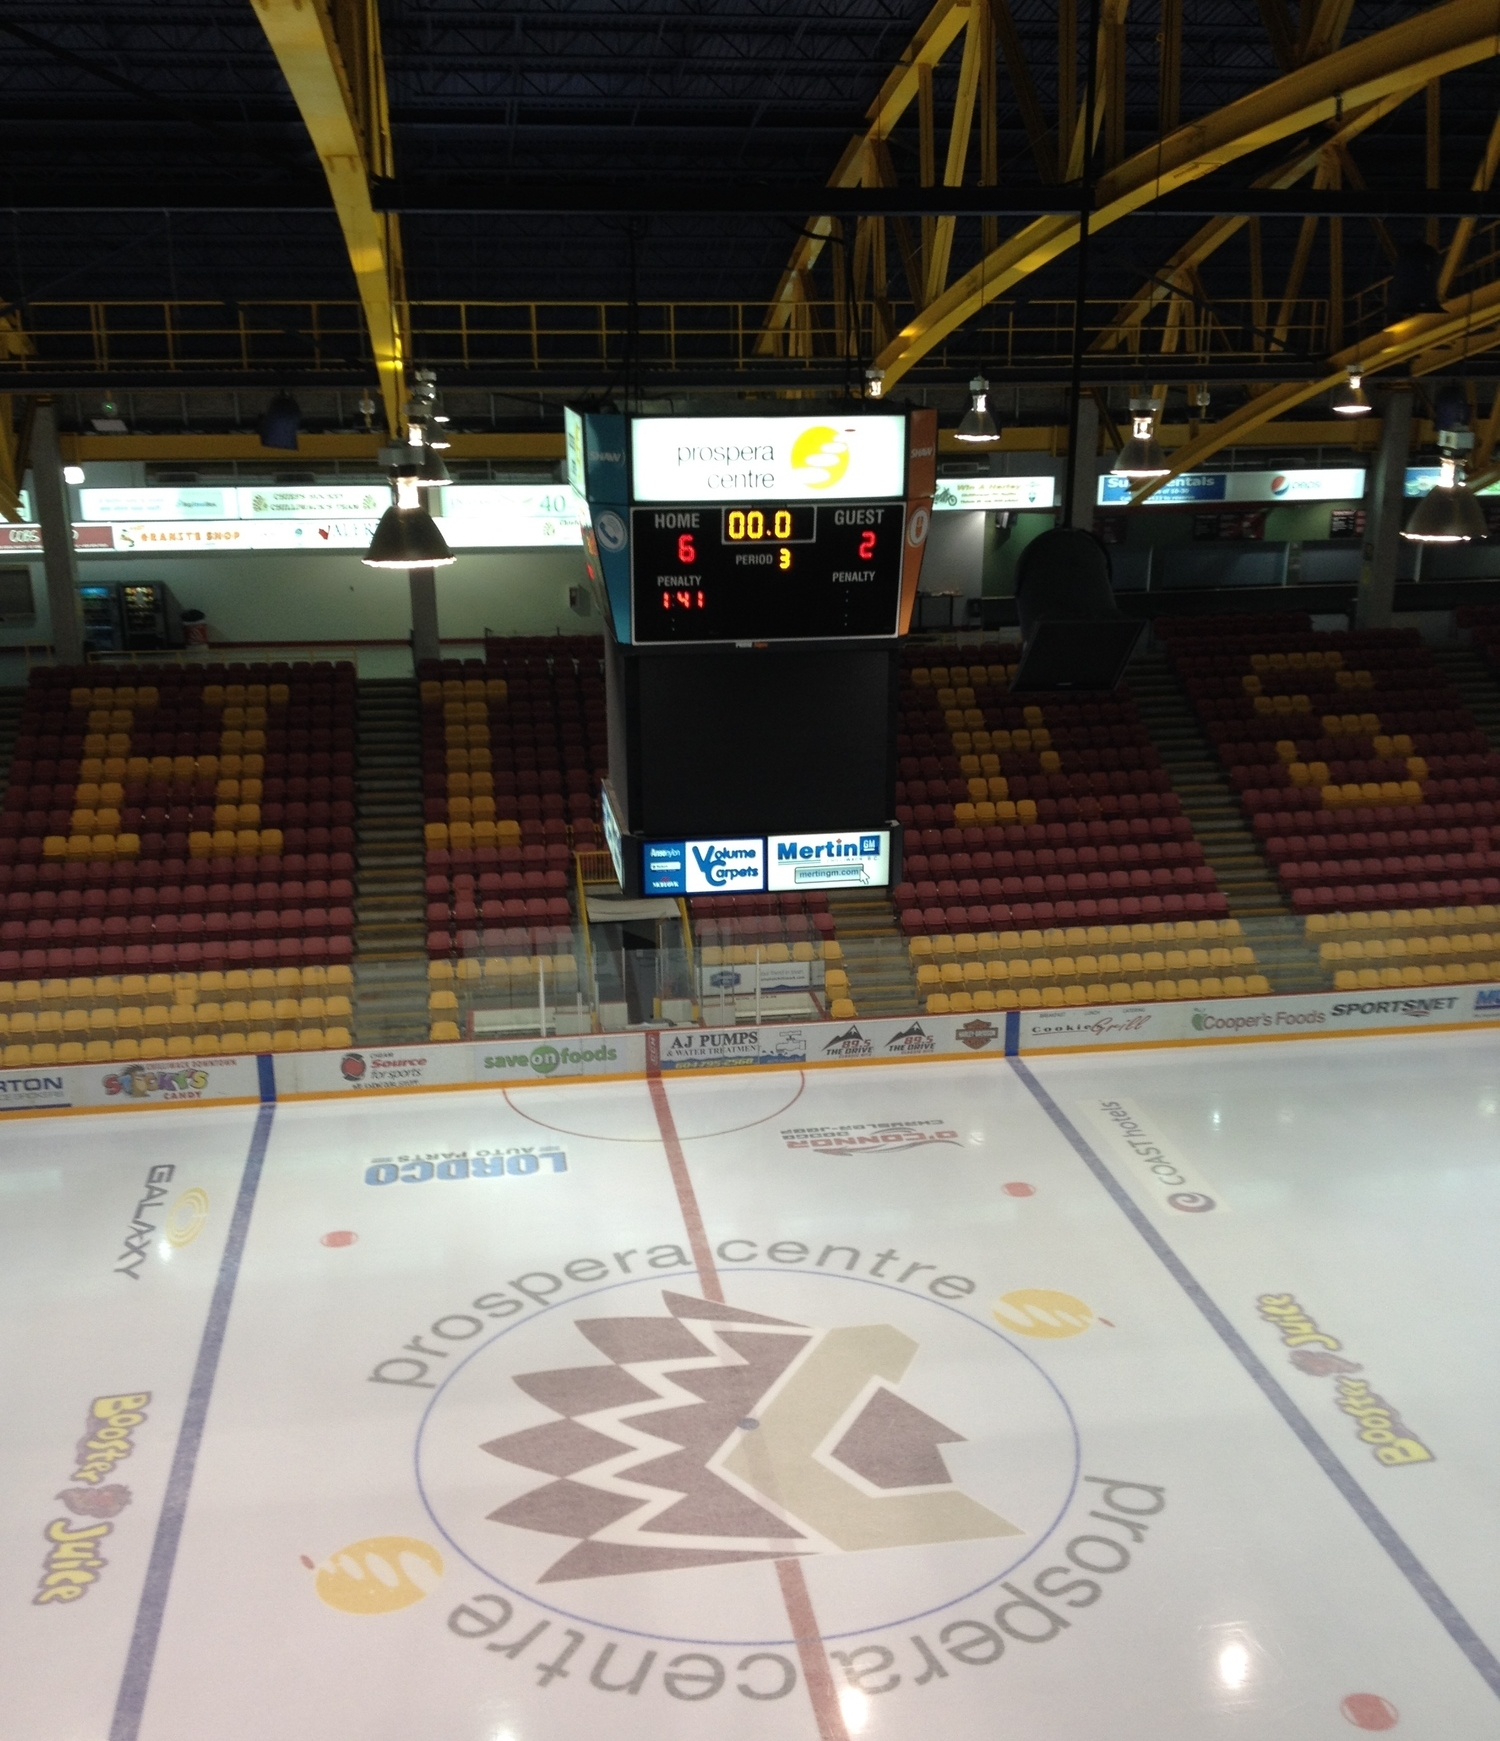 The view from the rafters after Saturday's 6-2 loss at the hands of the Chilliwack Chiefs.